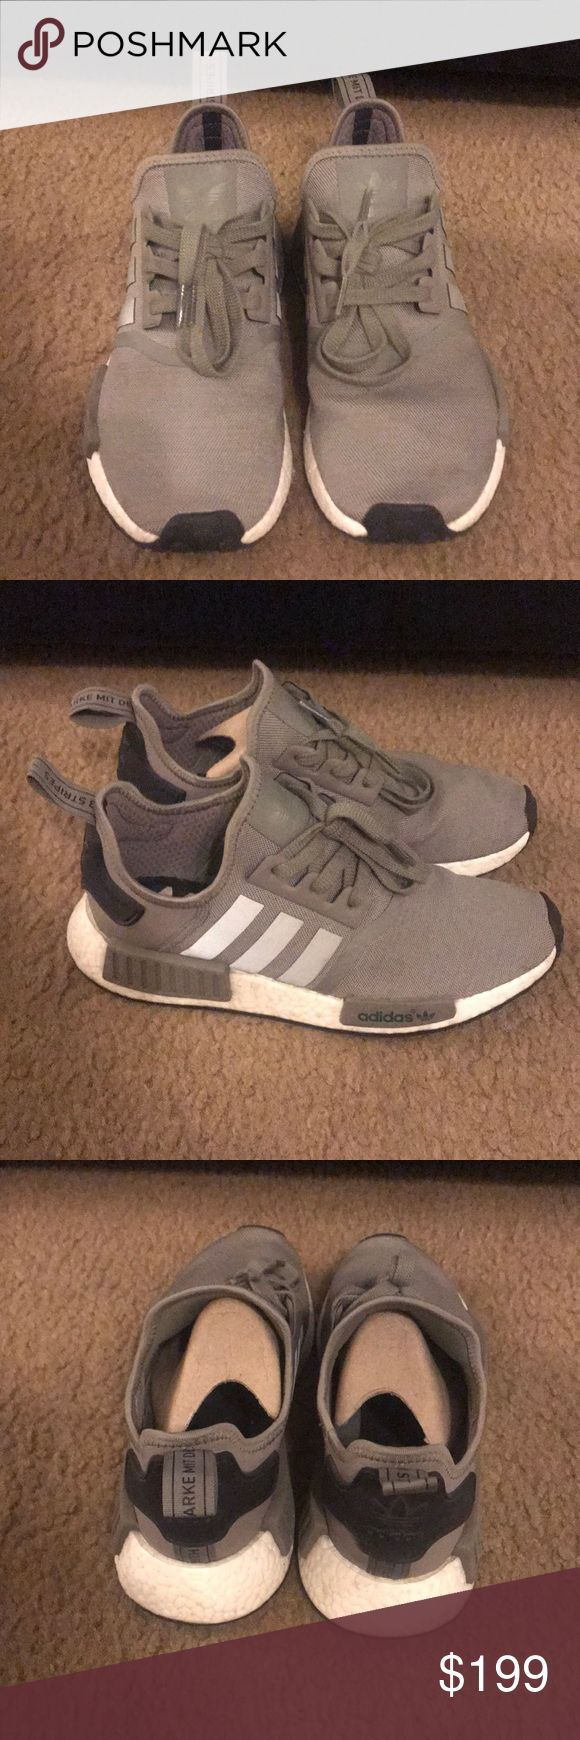 Rare Adidas NMD R1 ba7249 olive, khaki, black 2016 Rare Adidas NMD R1 ba7249 olive, khaki, black 2016. Original box included with cardboard shoe inserts. You can still get these new for $260. These are mint condition worn 4-5 Times. adidas Shoes Sneakers